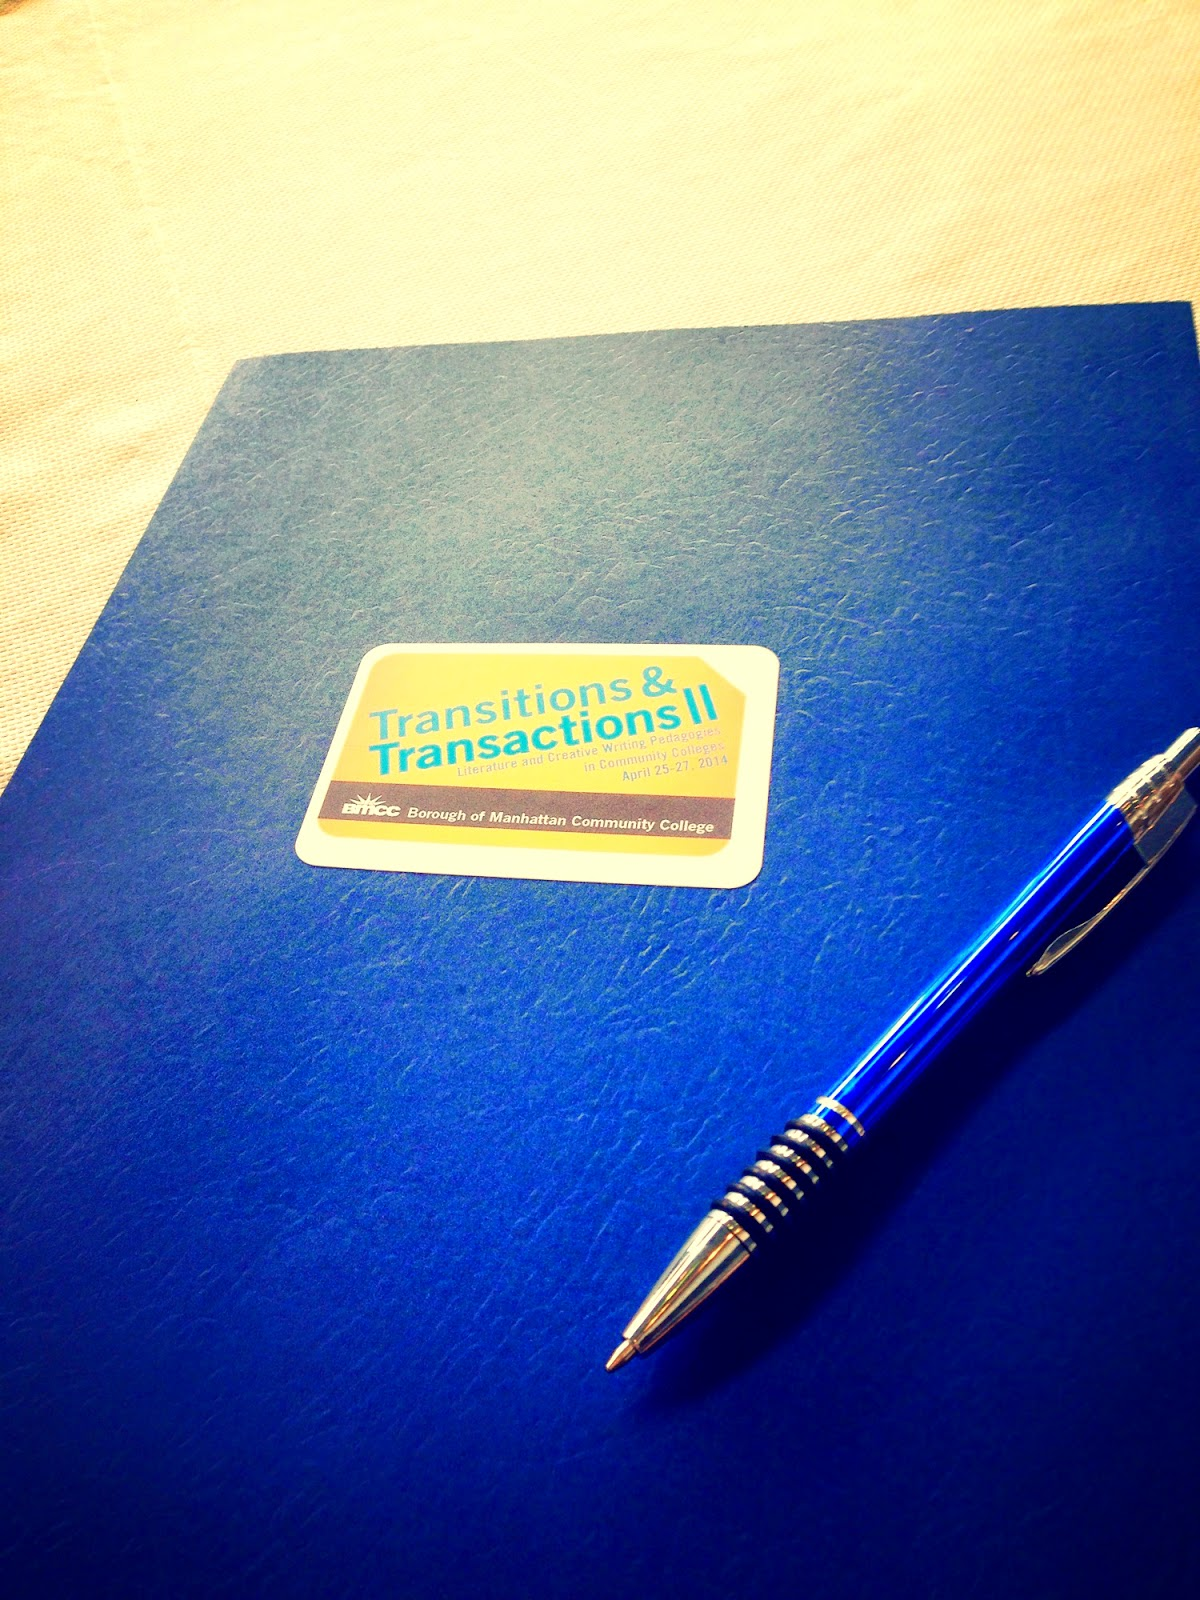 A Life Of We Transitions And Transactions It S A Conference Thing